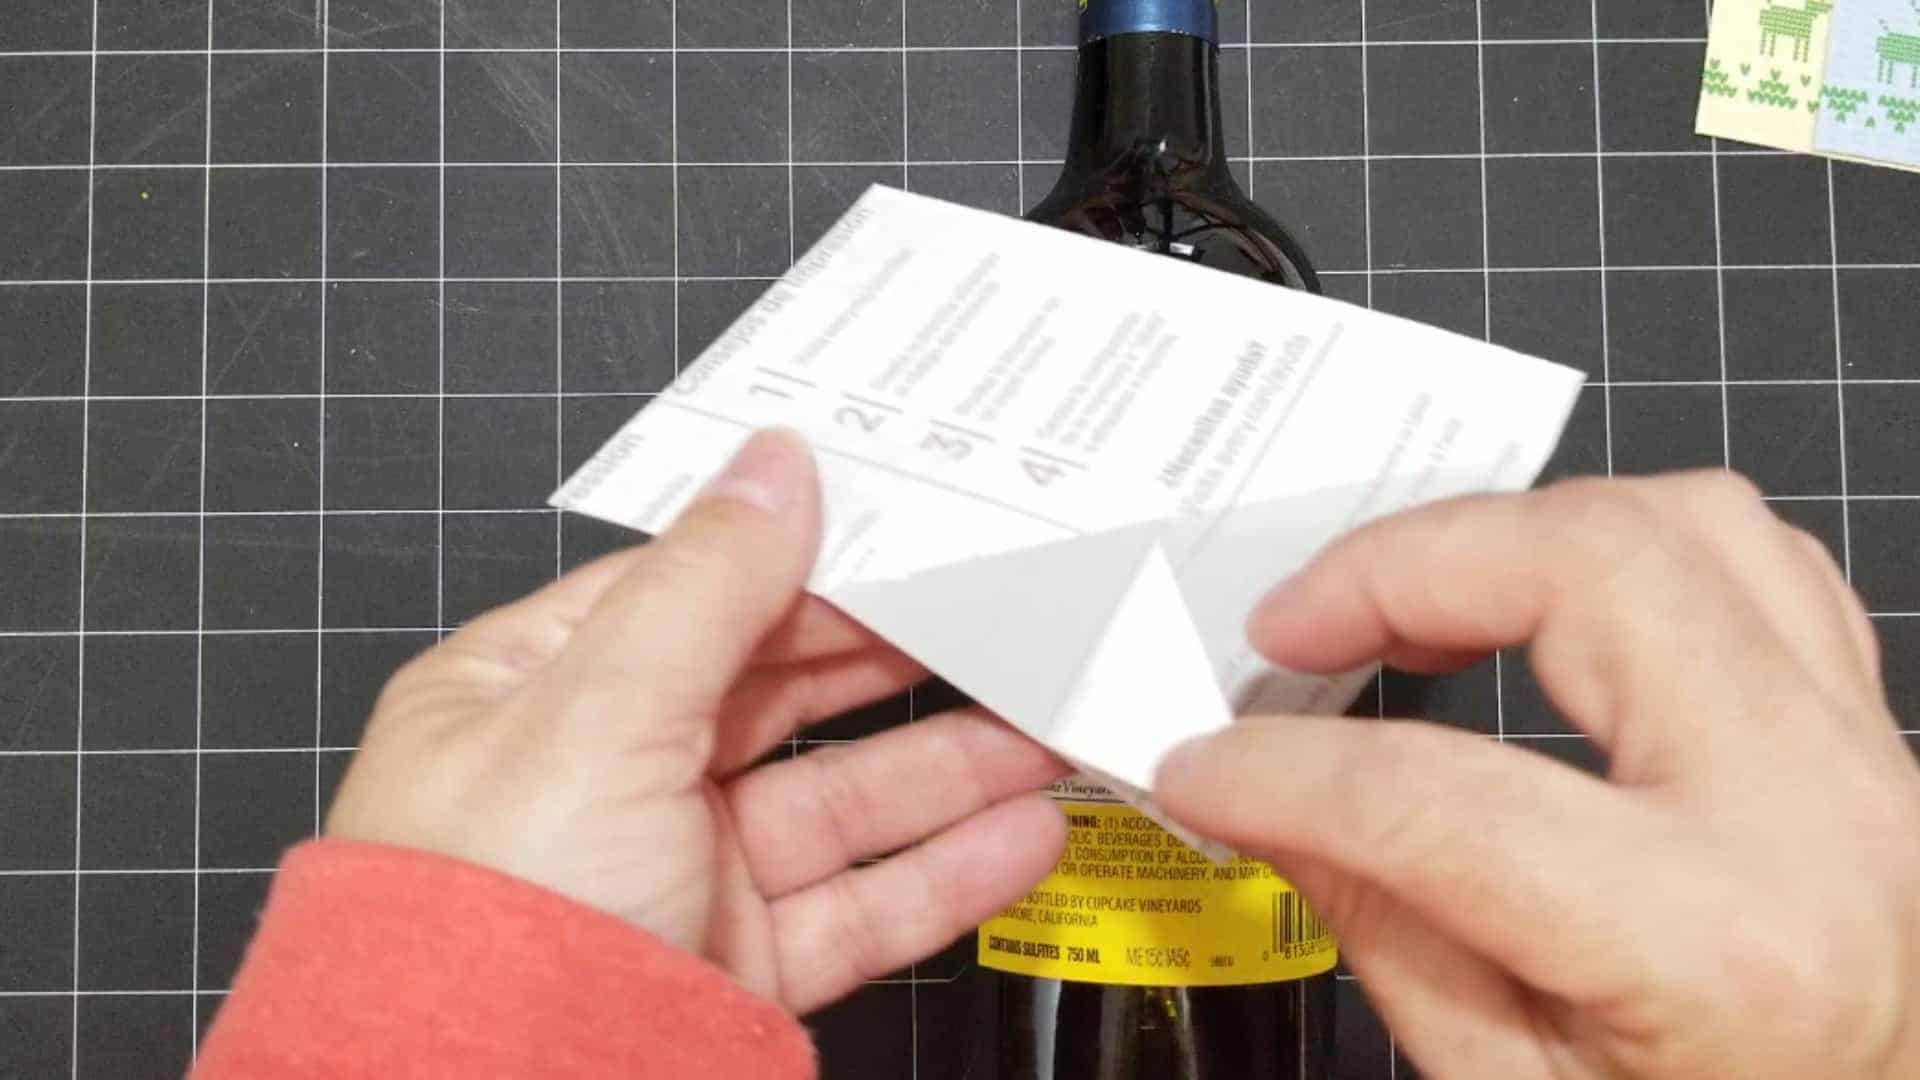 Peeling off the backing of the sticker paper to adhere the holiday wine label.